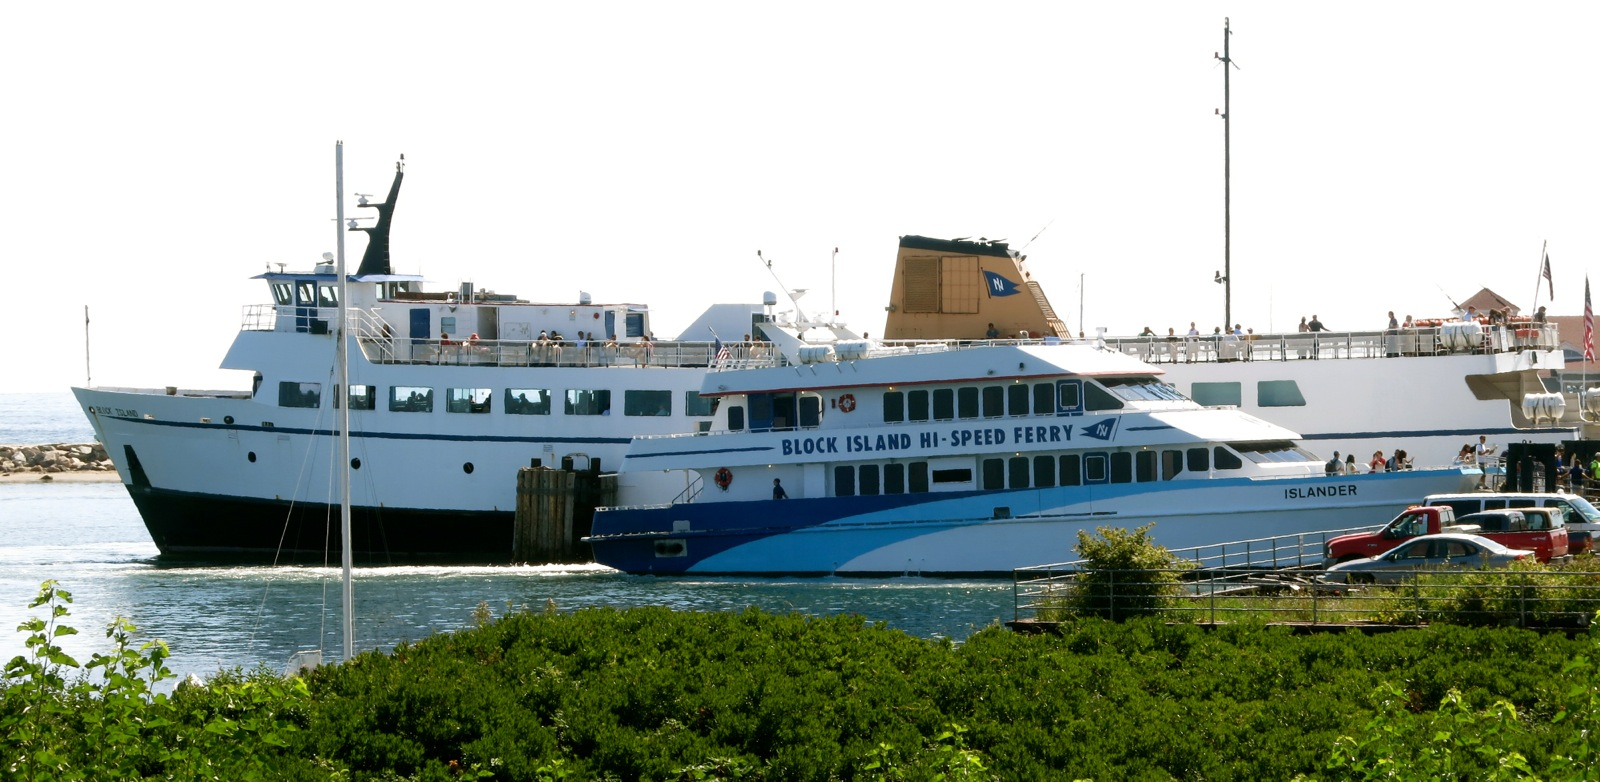 How Long Is The High Speed Ferry To Block Island